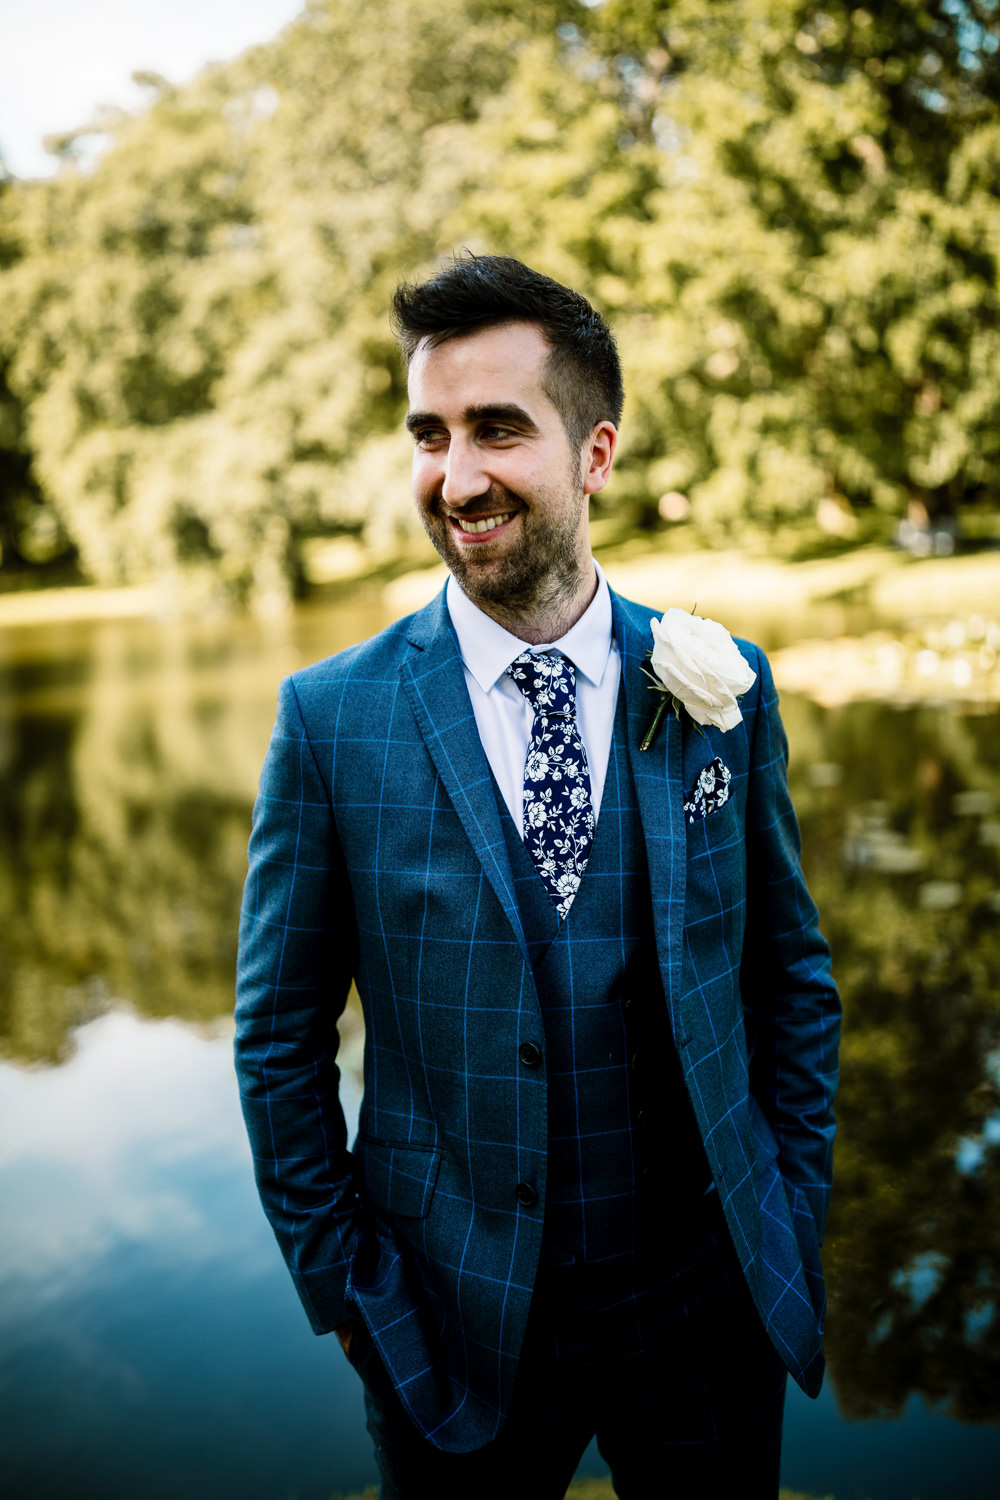 Groom Suit Blue Floral Tie Sperry Tent Wedding Hayley Baxter Photography